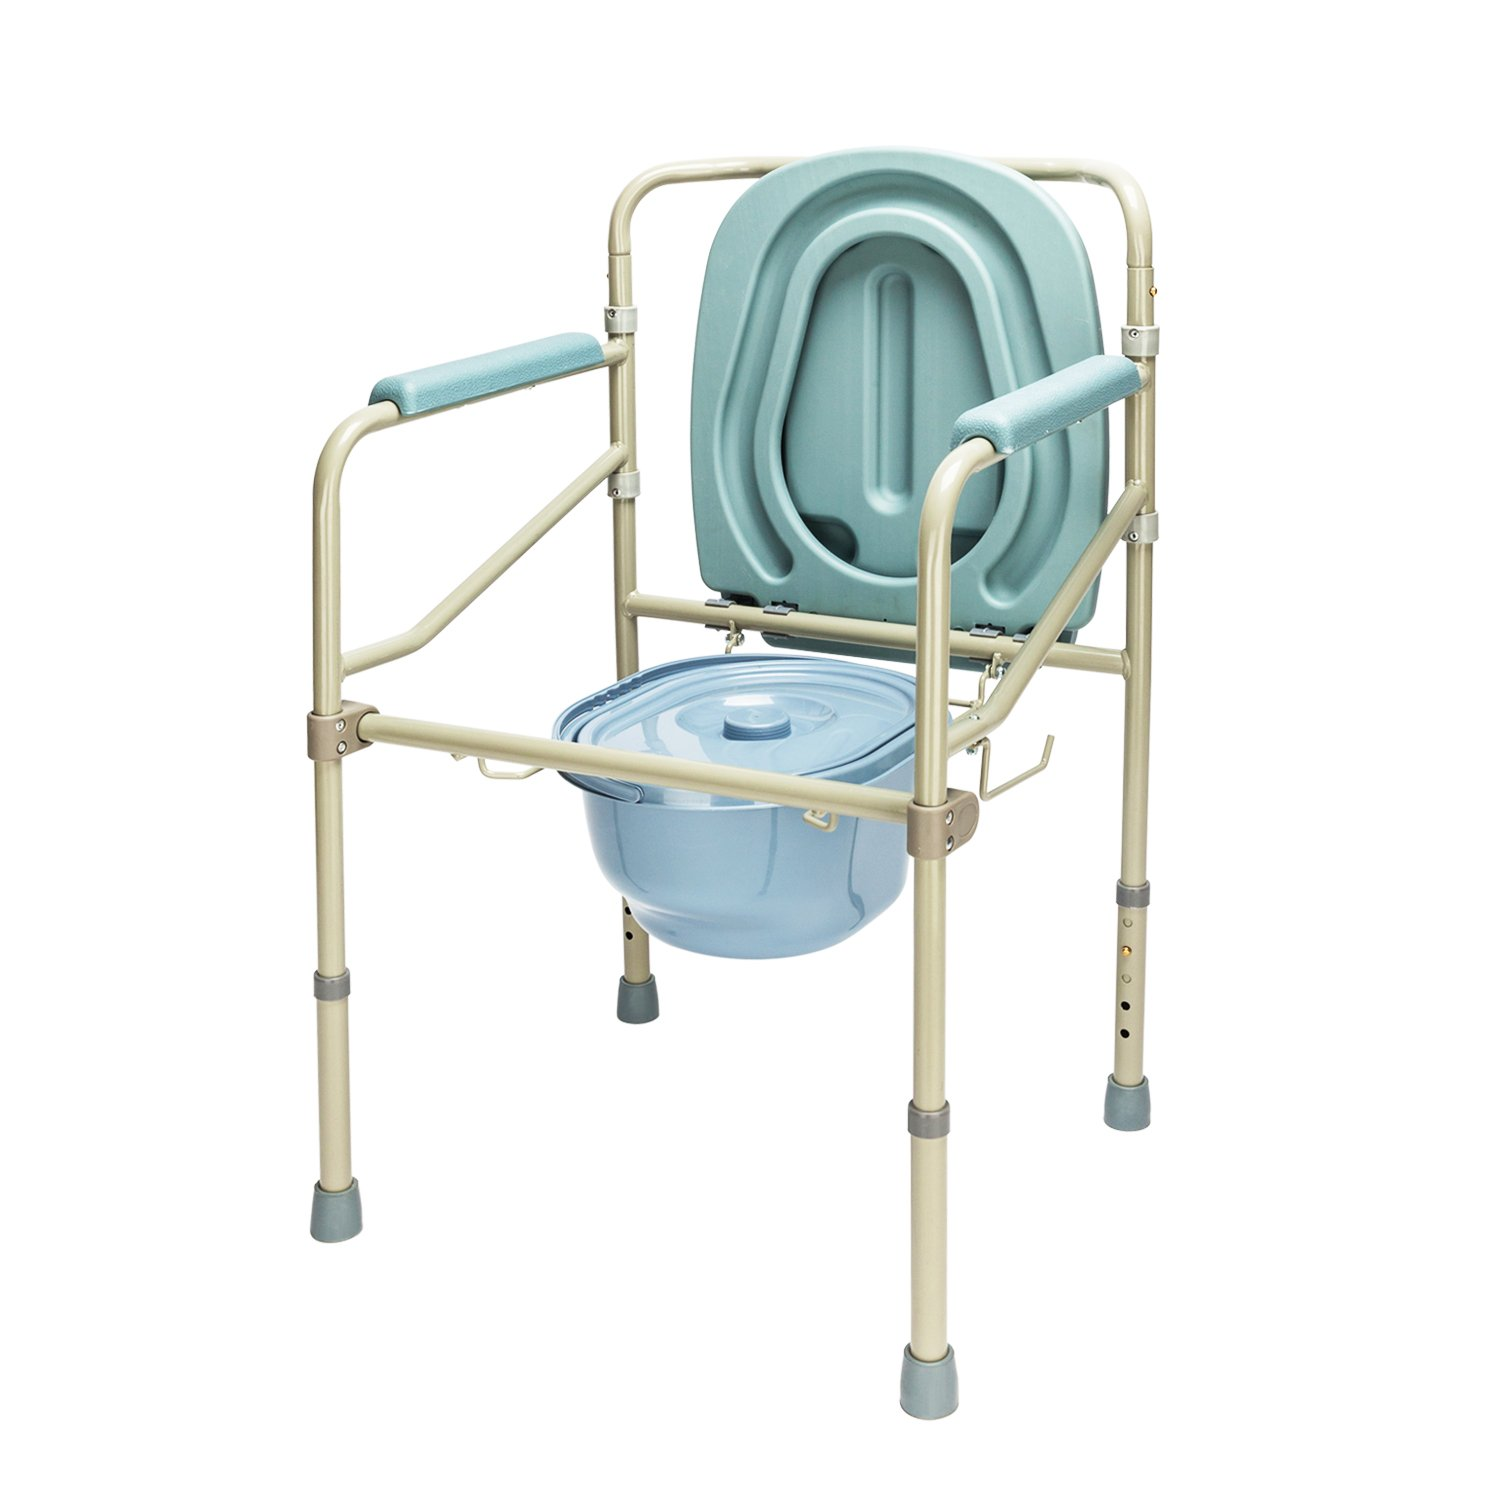 Durable Adult Commode Chair Raised Over Toilet Seat Bedside Bathroom Potty Travel Bucket